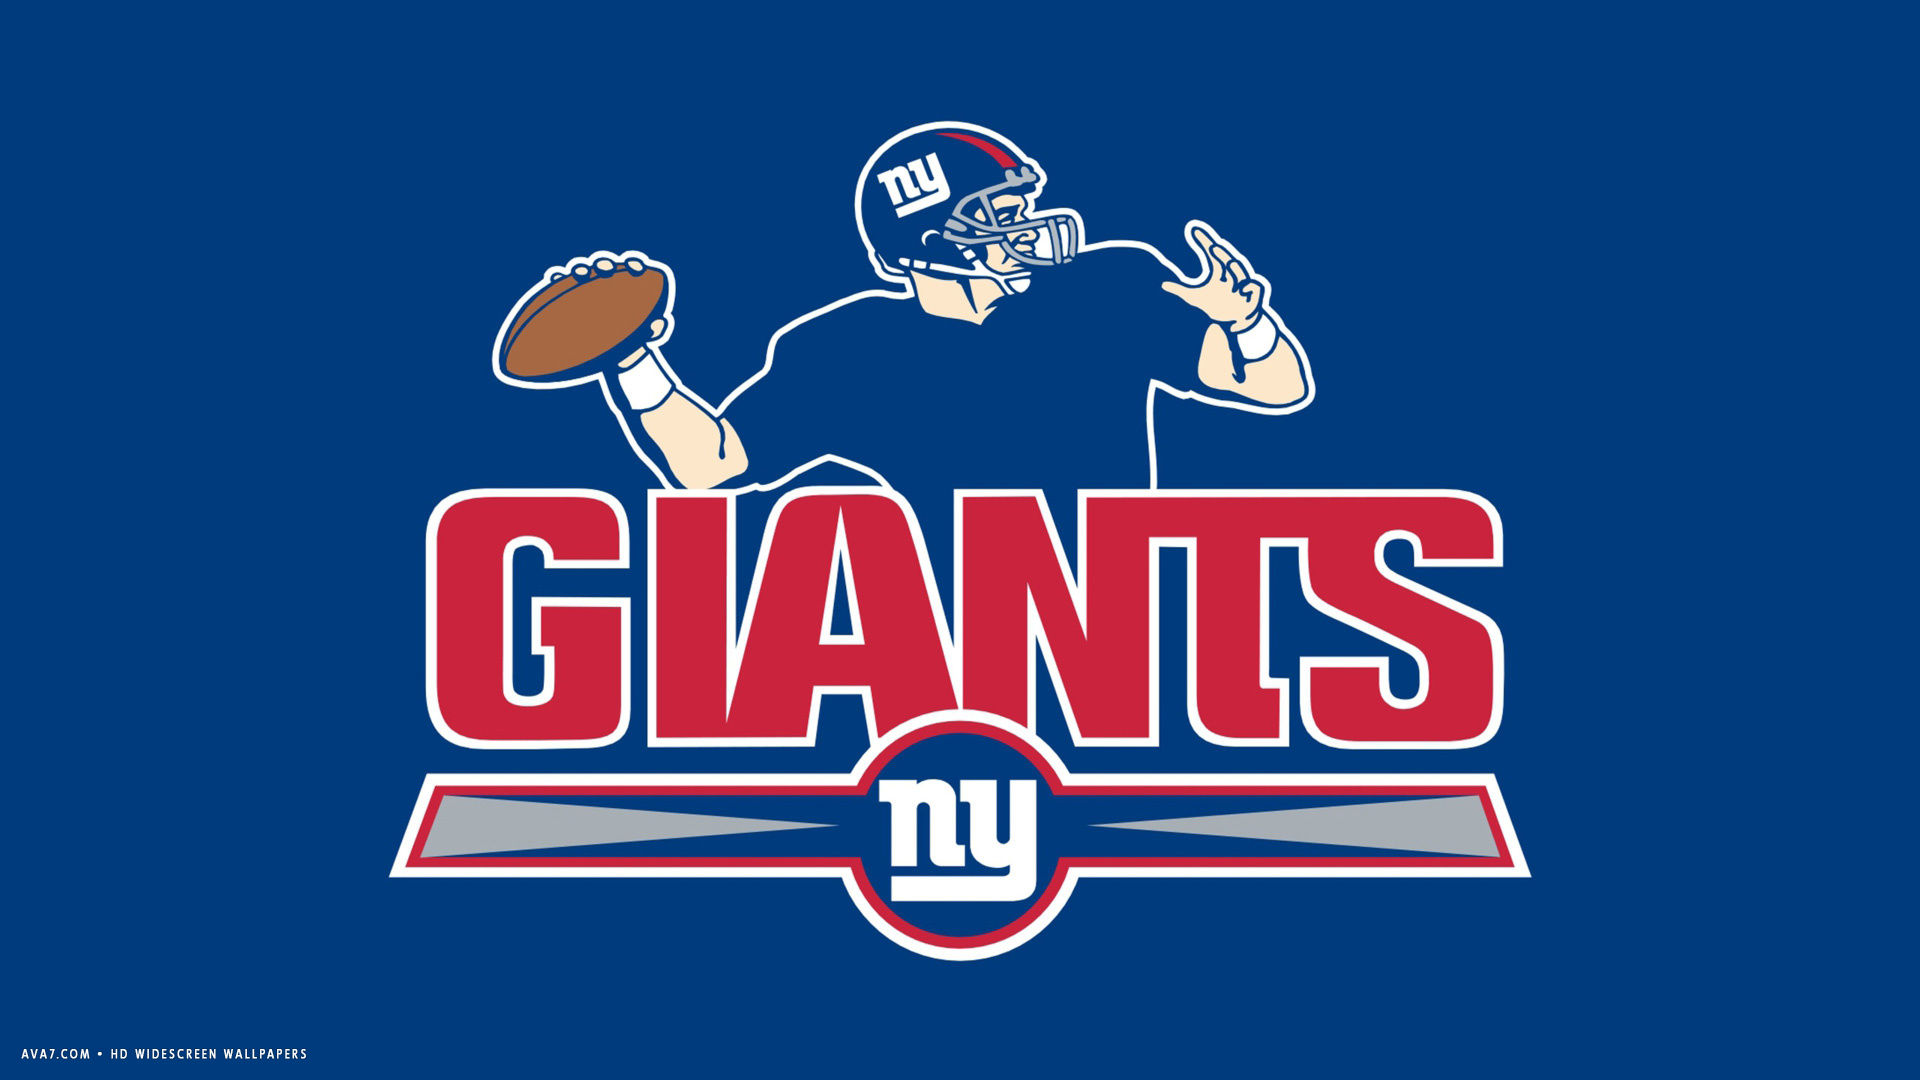 new york giants nfl football team hd widescreen wallpaper